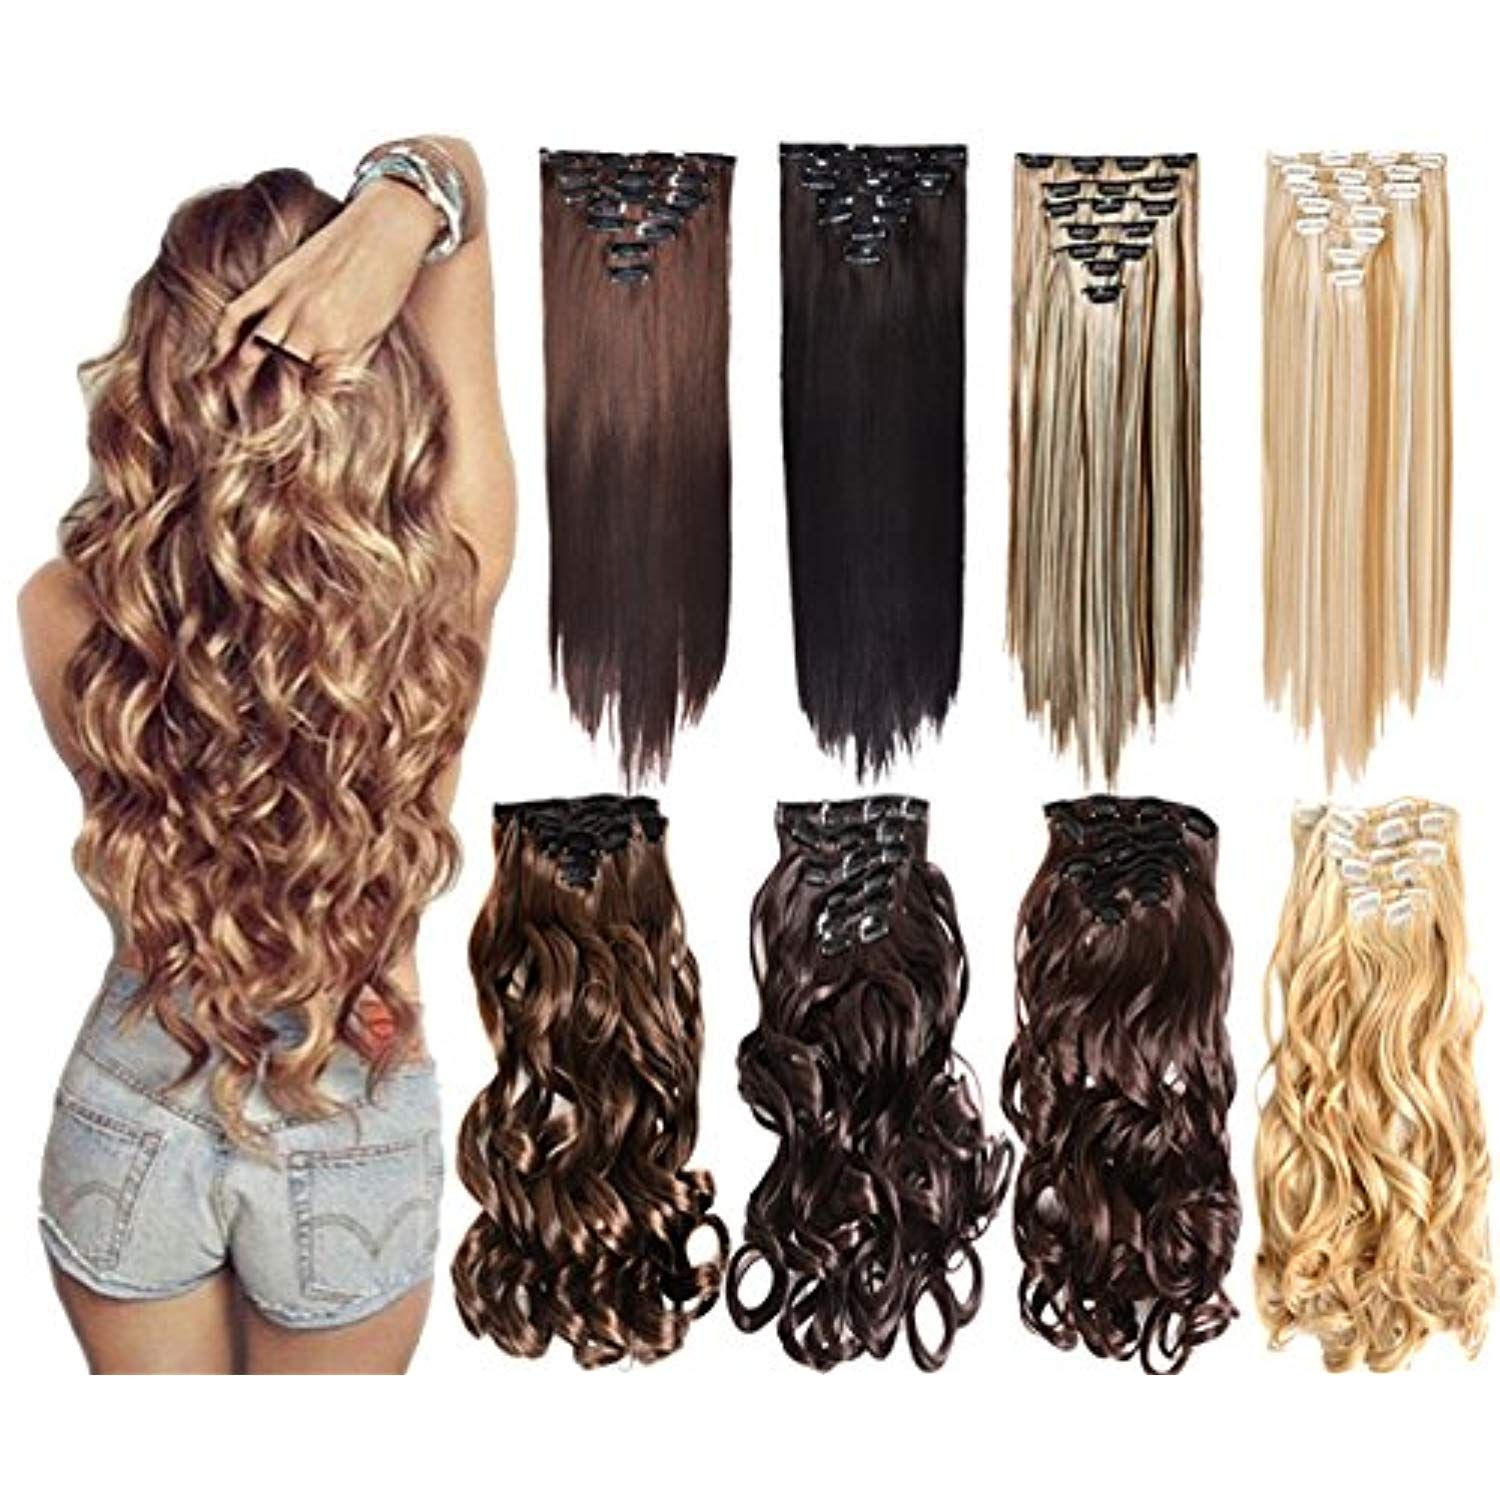 7Pcs 16 Clips 2024 Inch Thick Double Weft Full Head Clip